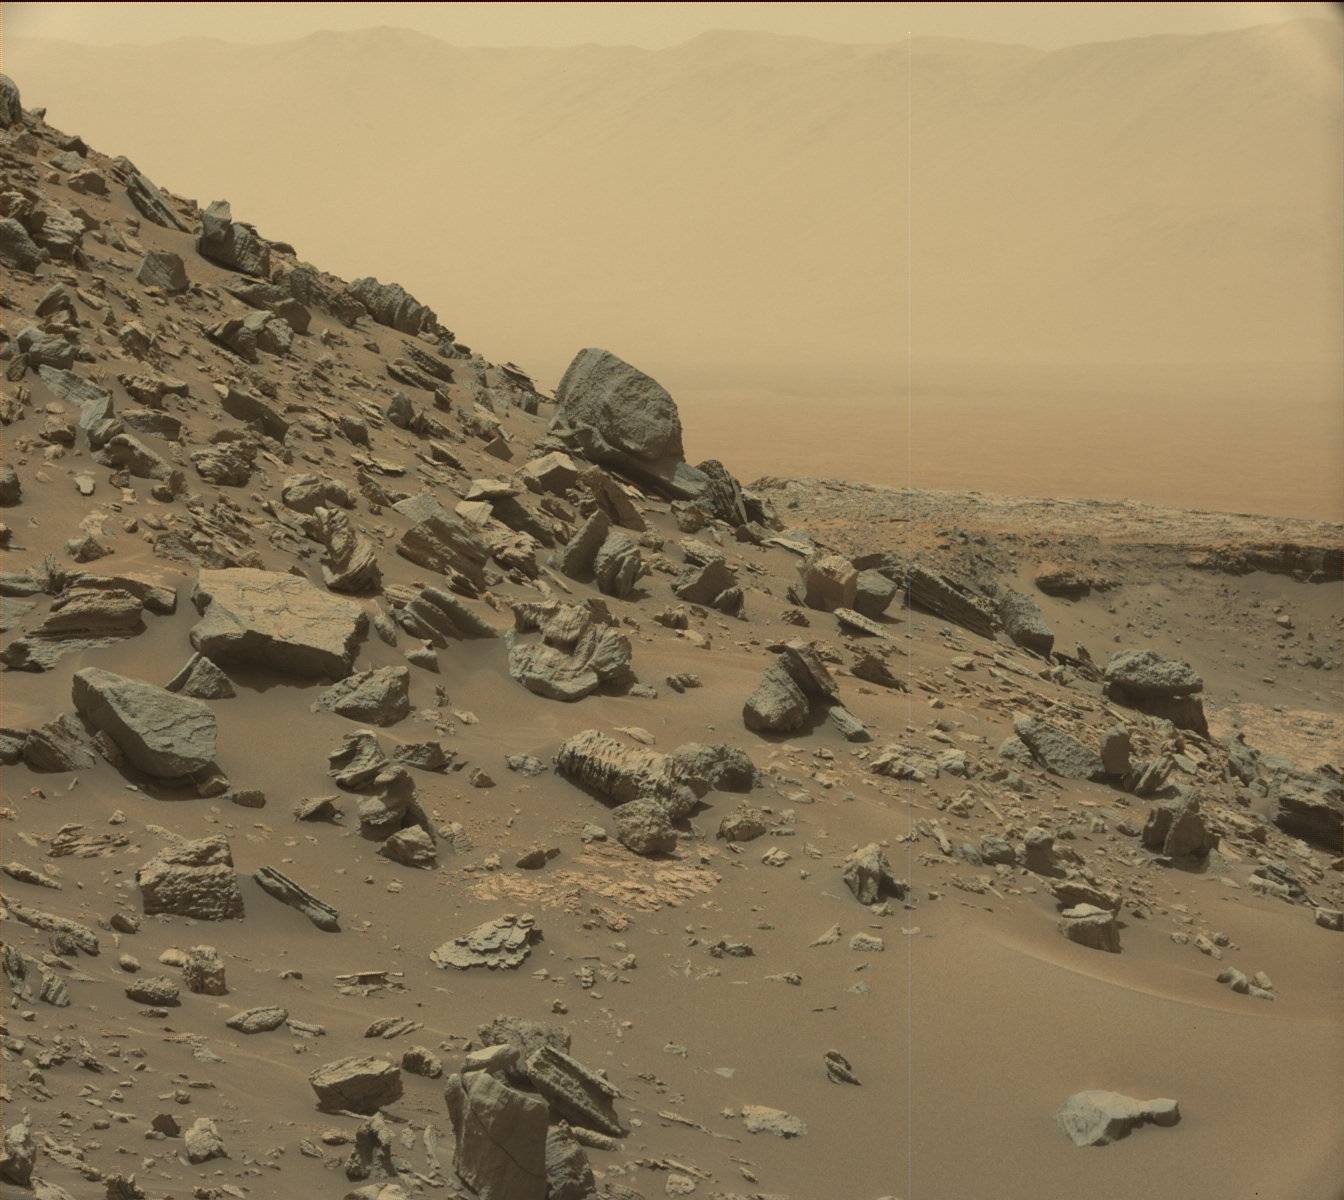 16-09-08-mars-curiosity-rover-msl-rock-pia21041-full